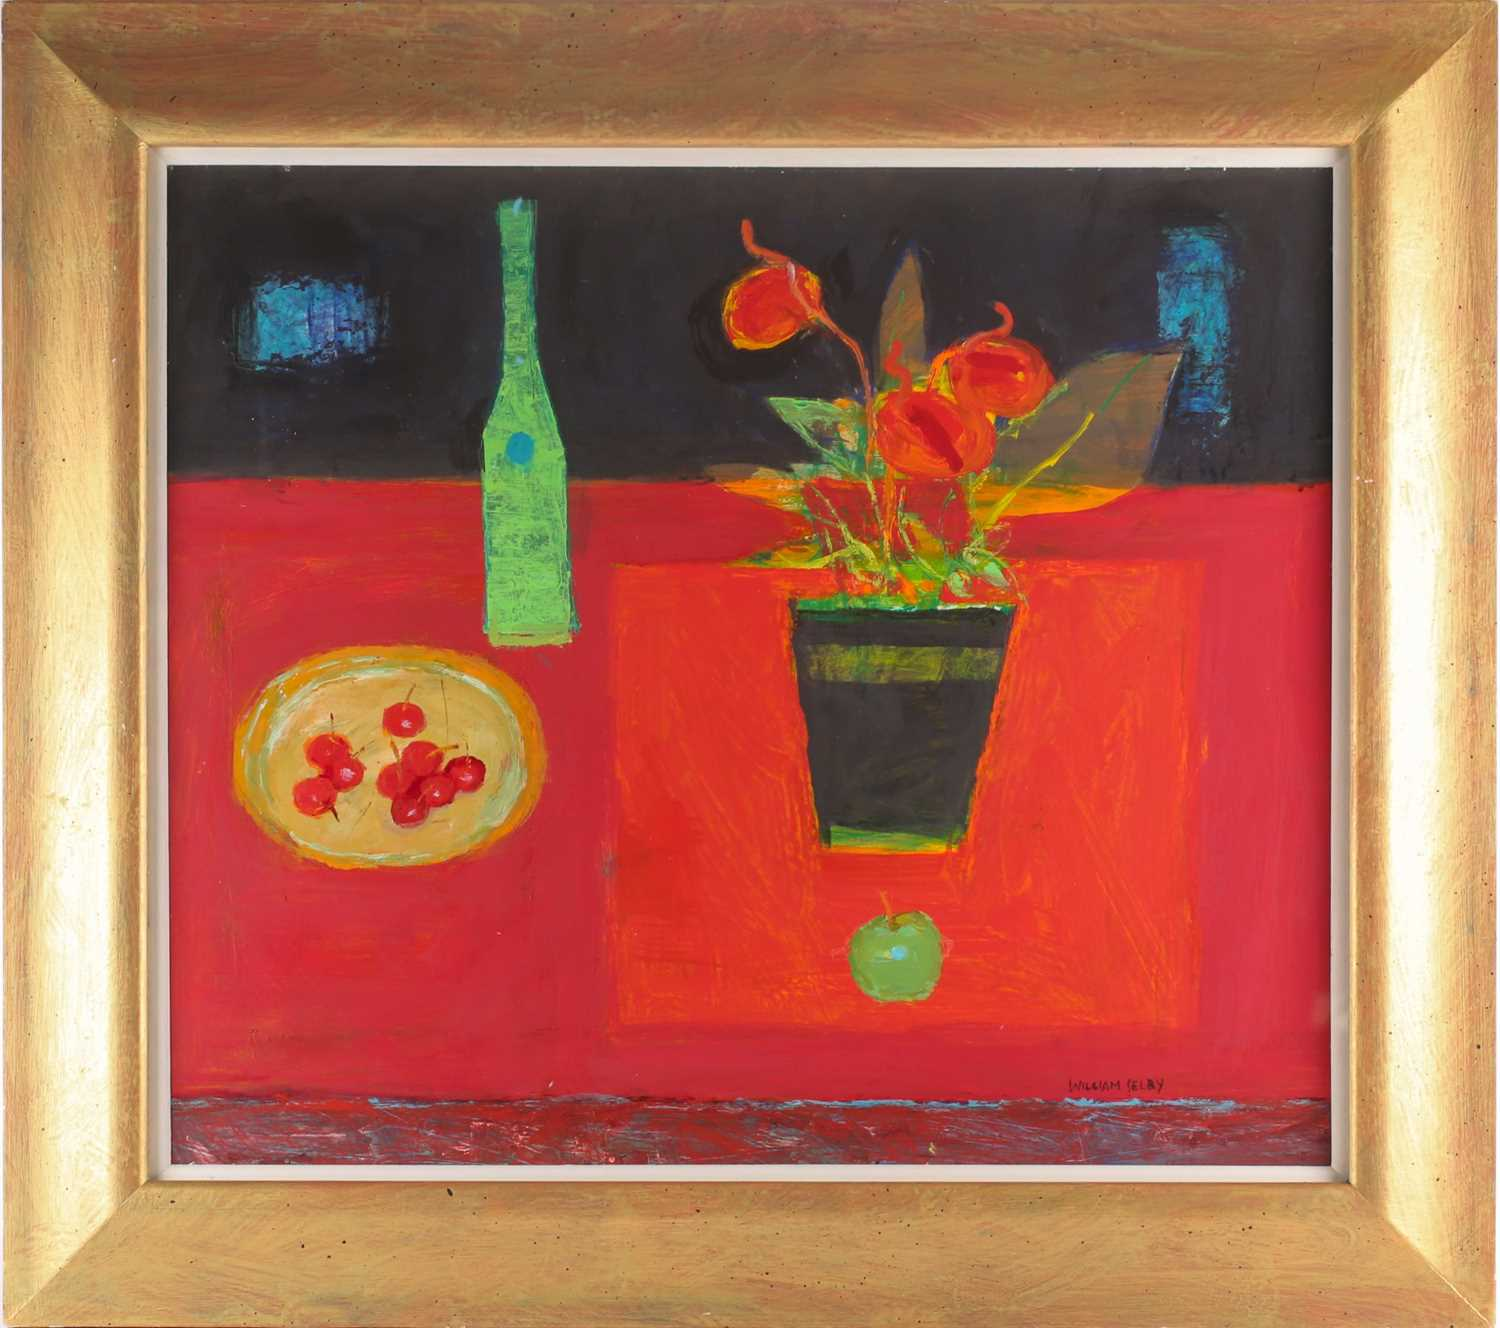 William Selby, (B. 1933), Green Bottle, acrylic on board, signed lower right, 64 cm x 74 cm. Ex